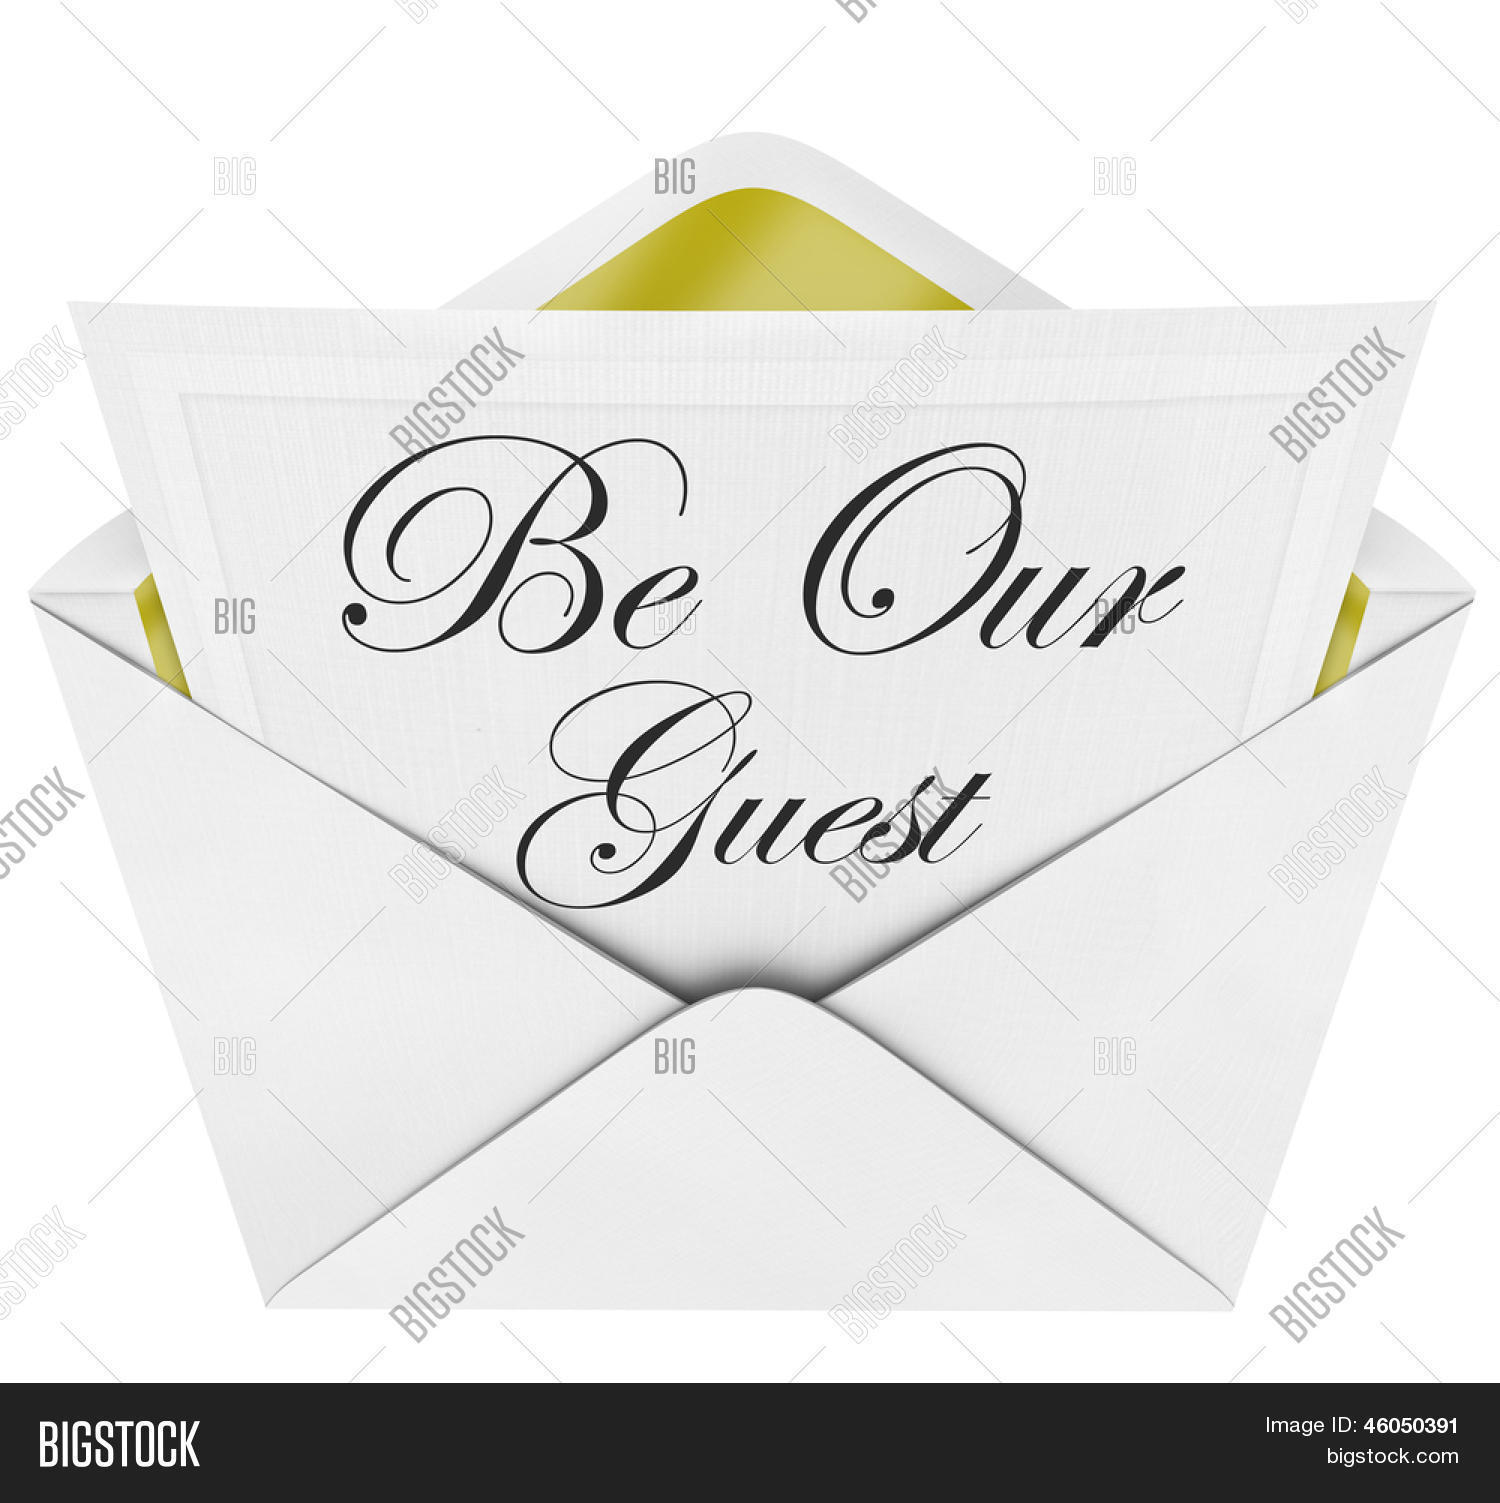 be our guest words image photo free trial bigstock